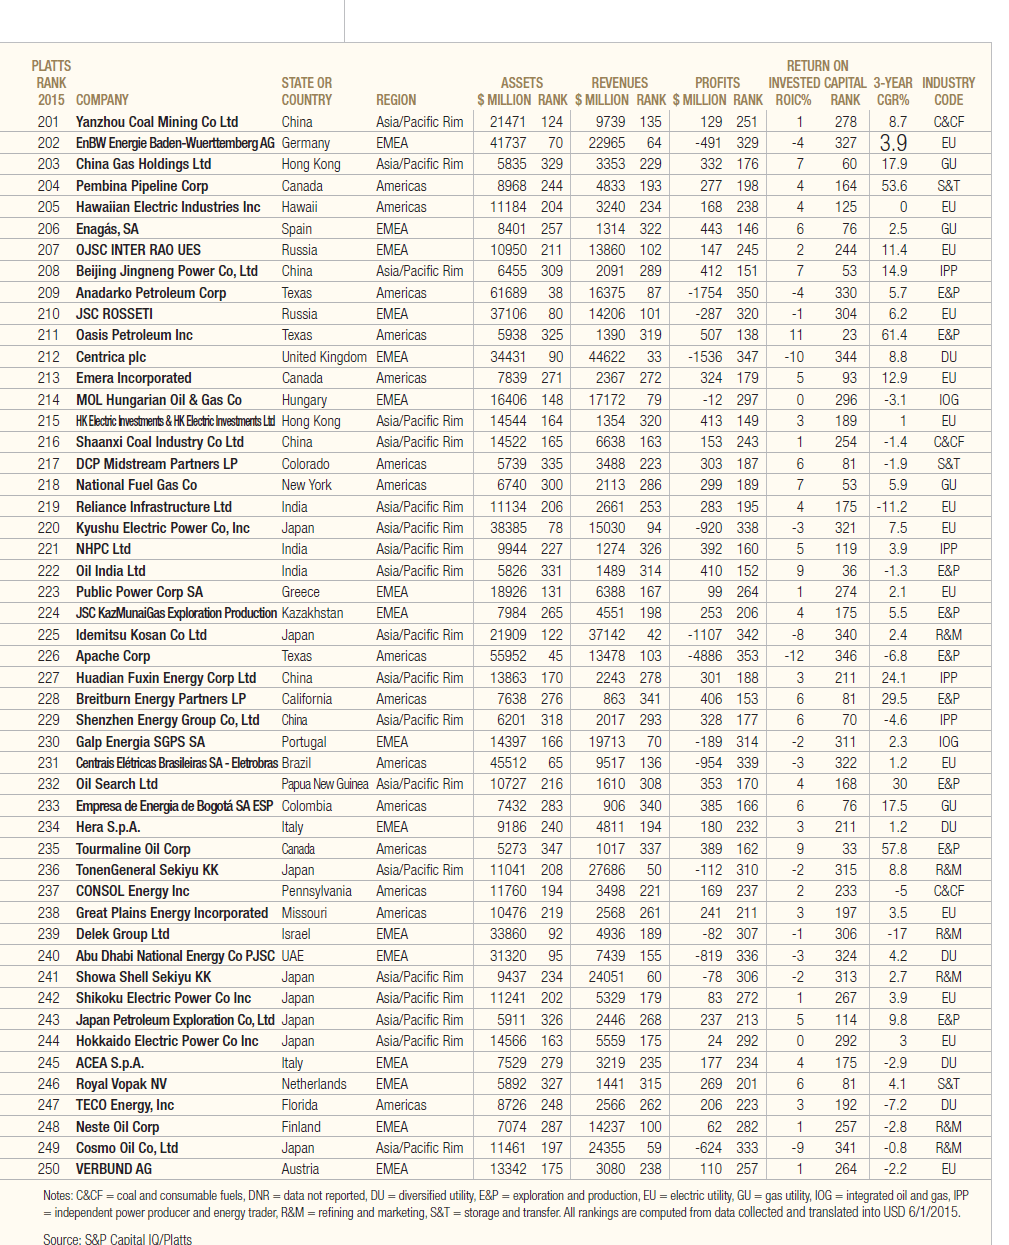 Platts Top 250 Energy Companies for 2015-Page 5